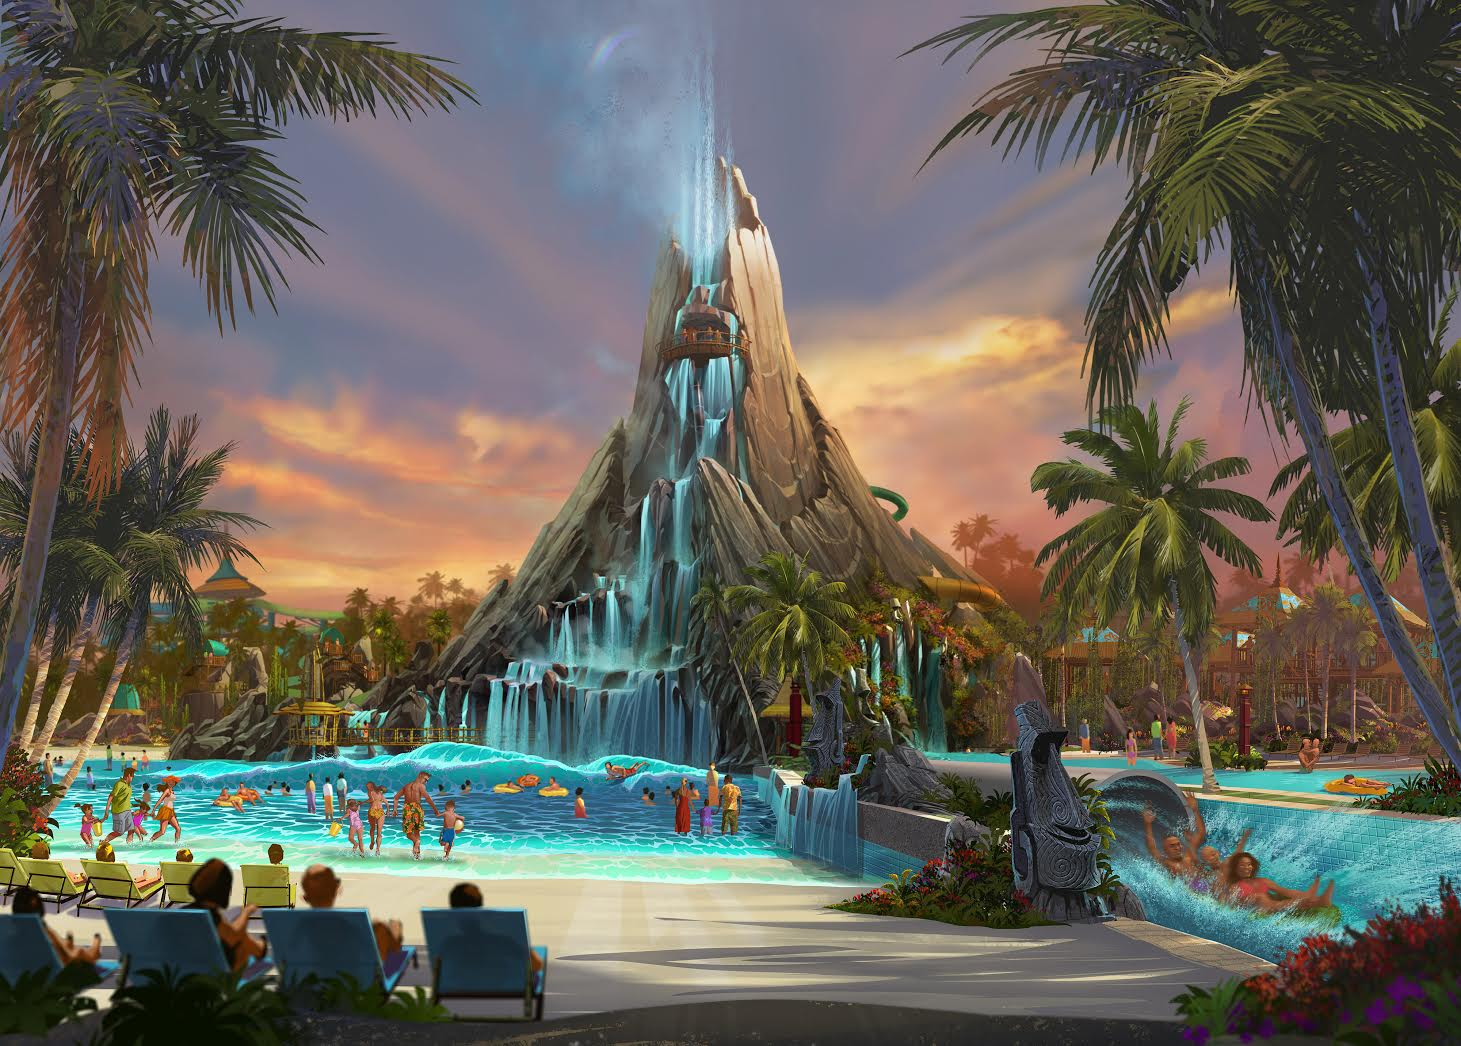 Universal Orlando Resort is bringing to life an entirely new water theme park experience – Volcano Bay at Universal Orlando Resort. It will join Universal Studios Florida and Universal's Islands of Adventure and become the resort's third incredibly immersive park, opening in 2017.Universal's Volcano Bay will be a place for the entire family. It will offer radically innovative, thrilling attractions, peaceful moments of relaxation and an inspired guest experience that will forever change the perception of water theme parks.  It will be set in a highly themed, completely immersive environment inspired by postcard-perfect tropical islands.  And it will be the kind of special place that only the Universal team – the same team that has changed the face of Universal Orlando Resort in recent years - can envision and create.© 2015 Universal Orlando Resort. All rights reserved.